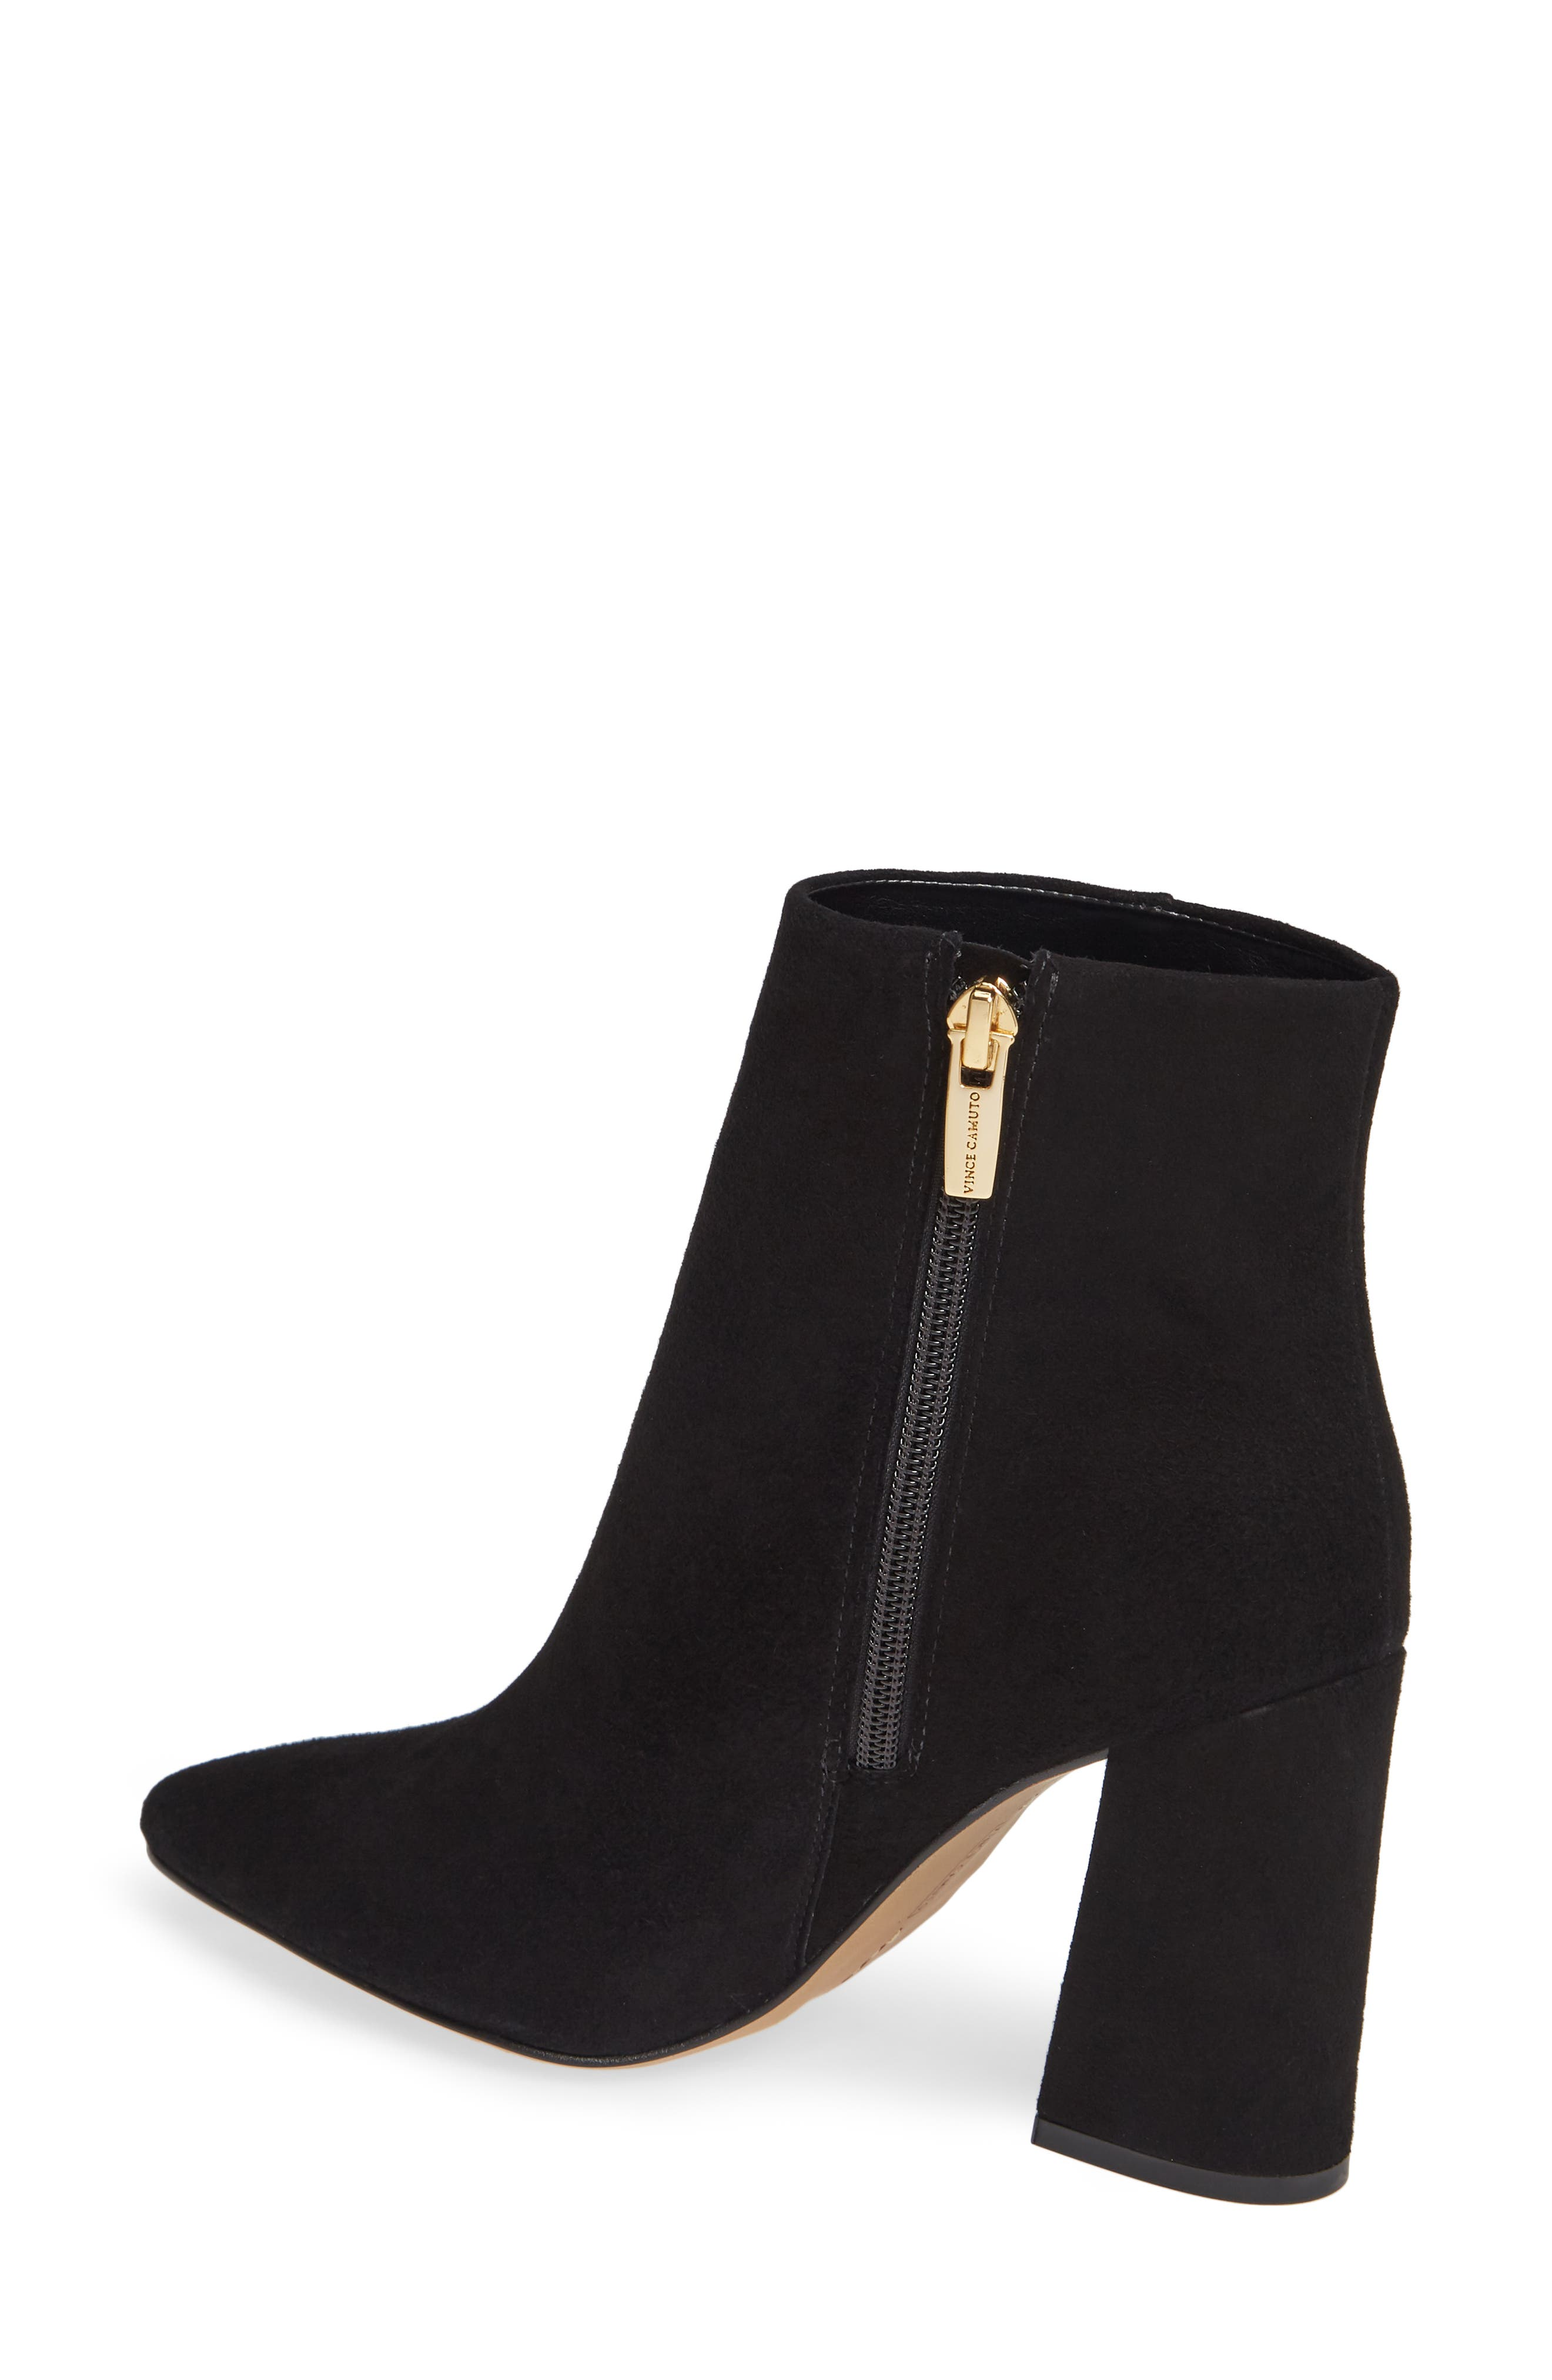 VINCE CAMUTO,                             Thelmin Genuine Calf Hair Bootie,                             Alternate thumbnail 2, color,                             003